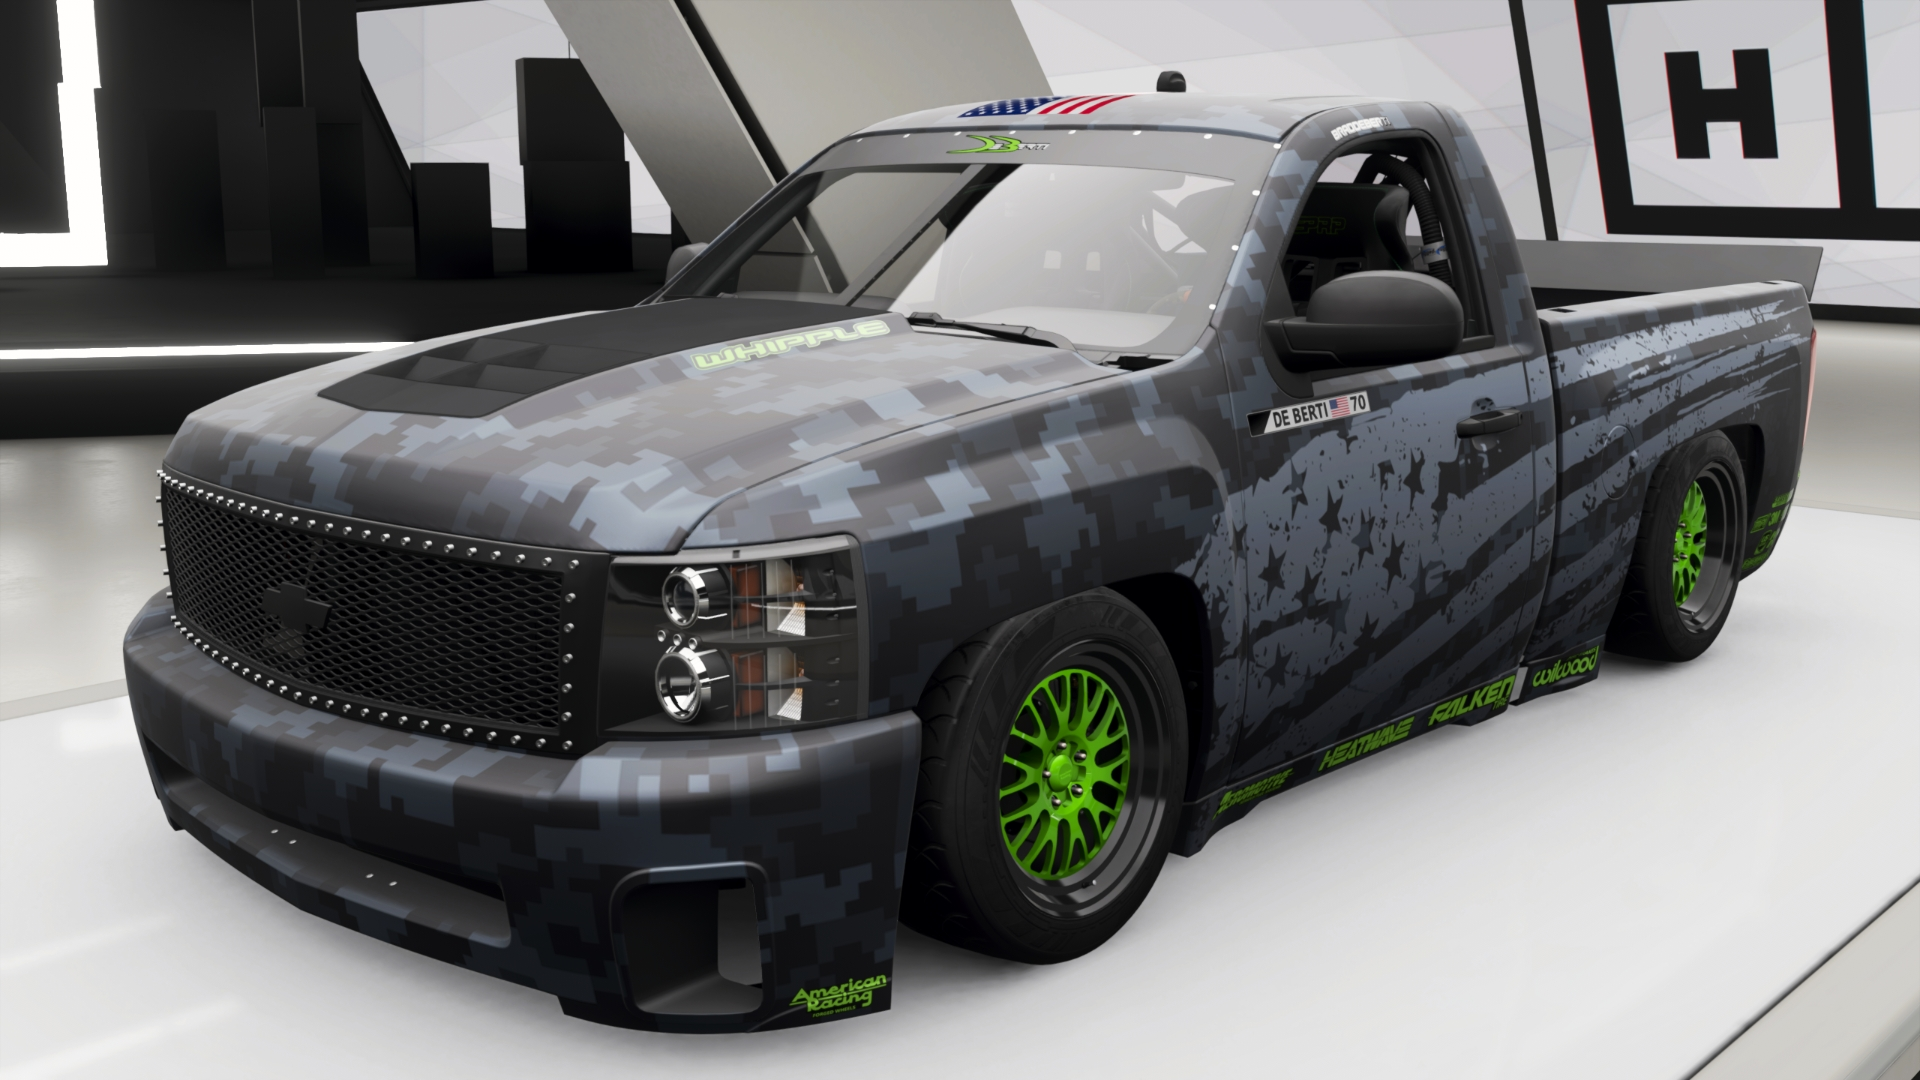 Image result for brad deberti drift truck forza